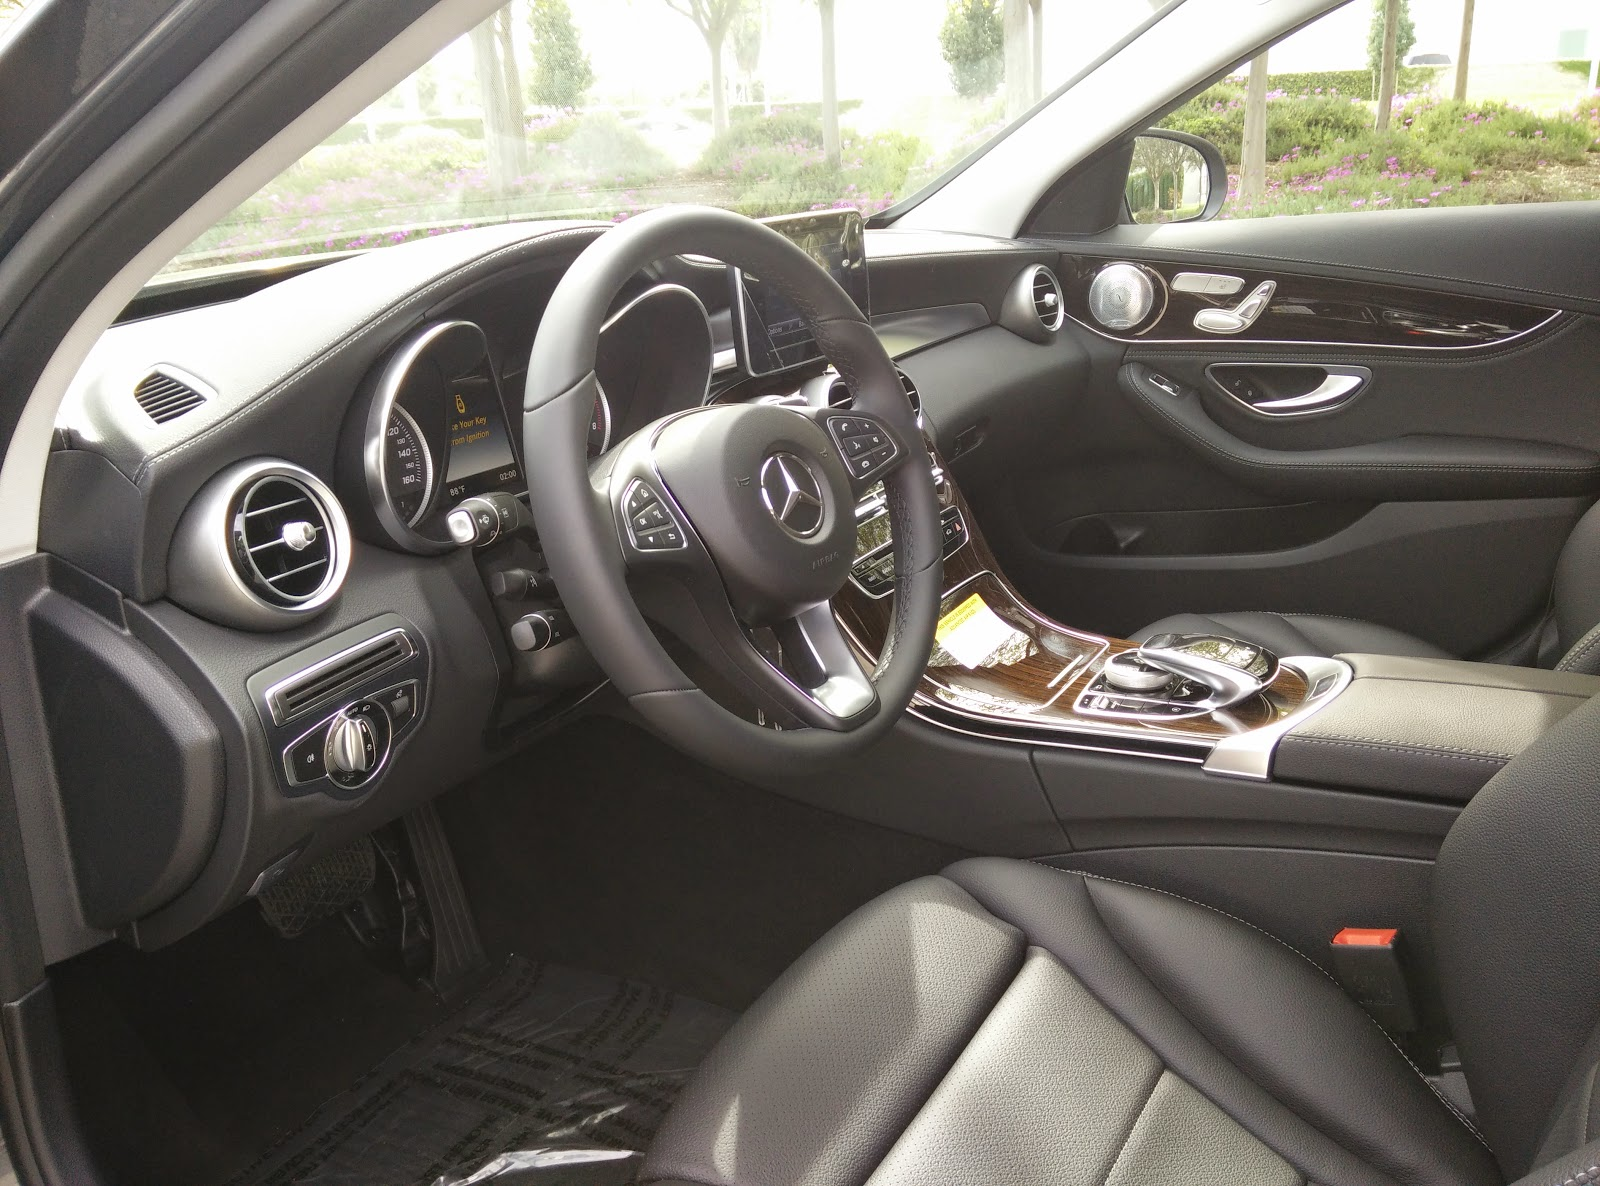 medium resolution of if there is one thing i definitely have to give mercedes benz credit for it is their interiors the interior of this particular c300 actually looks and